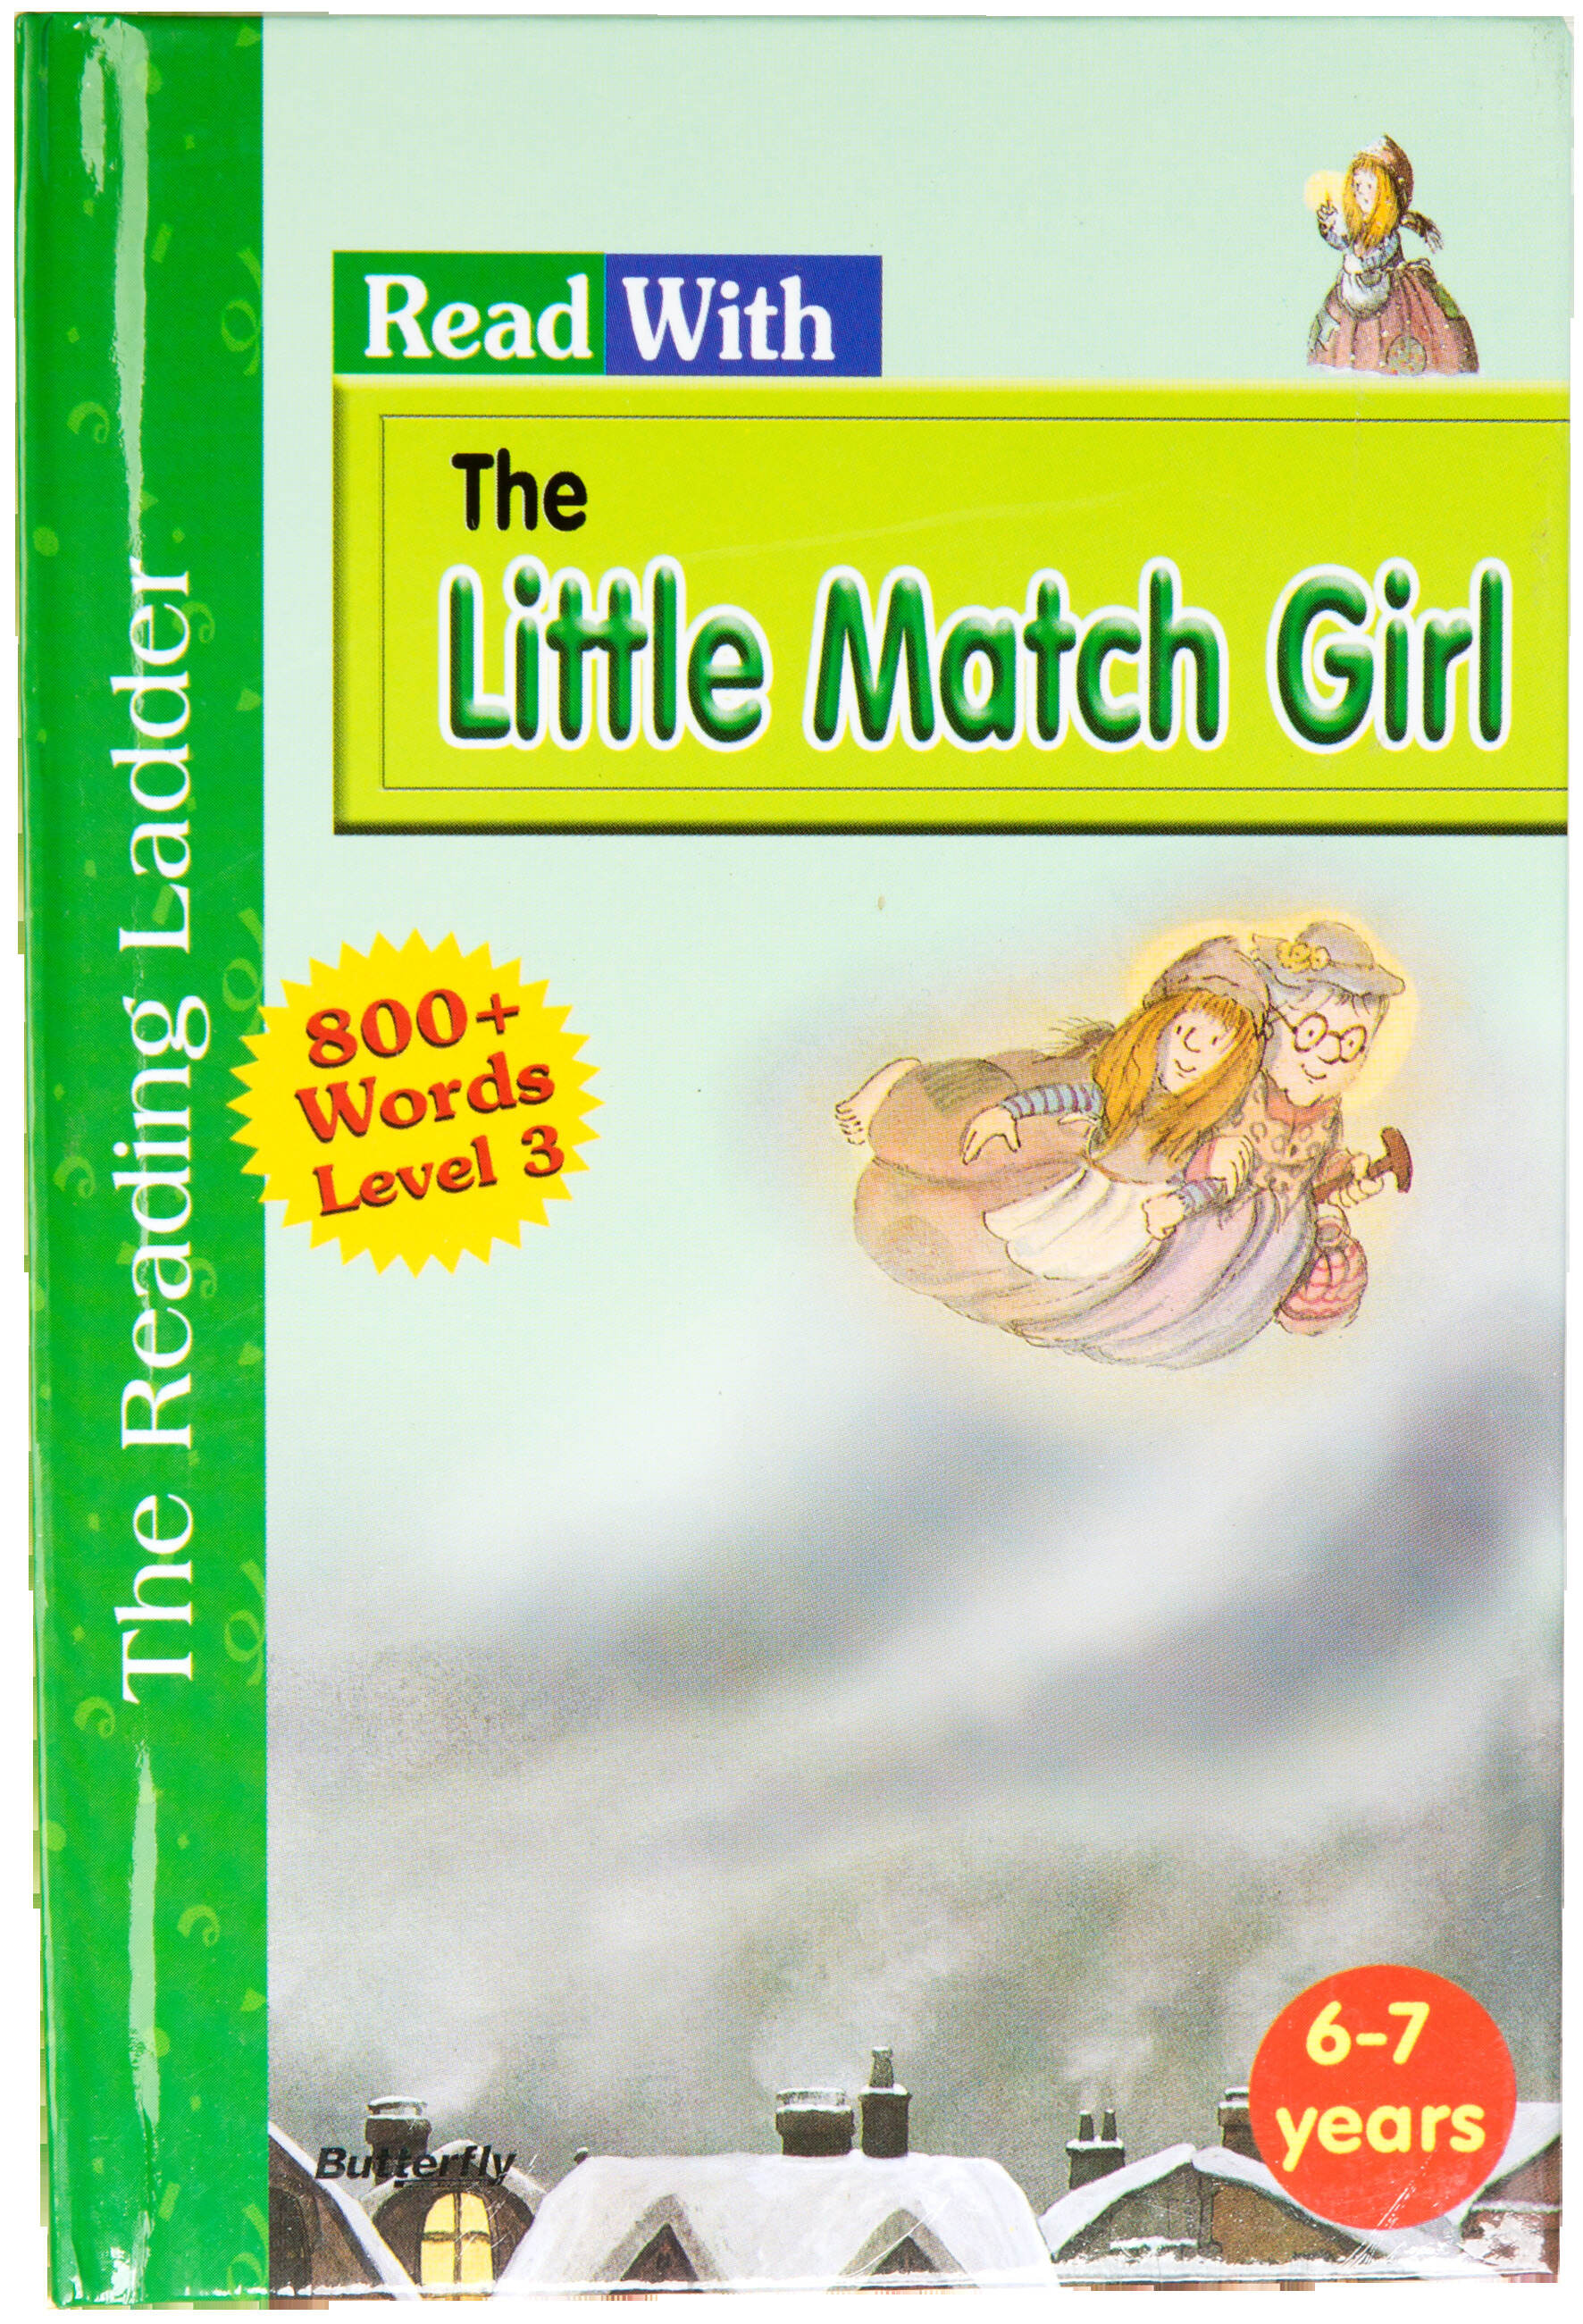 The Reading Ladder MHB - Level 3 - The Little Match Girl